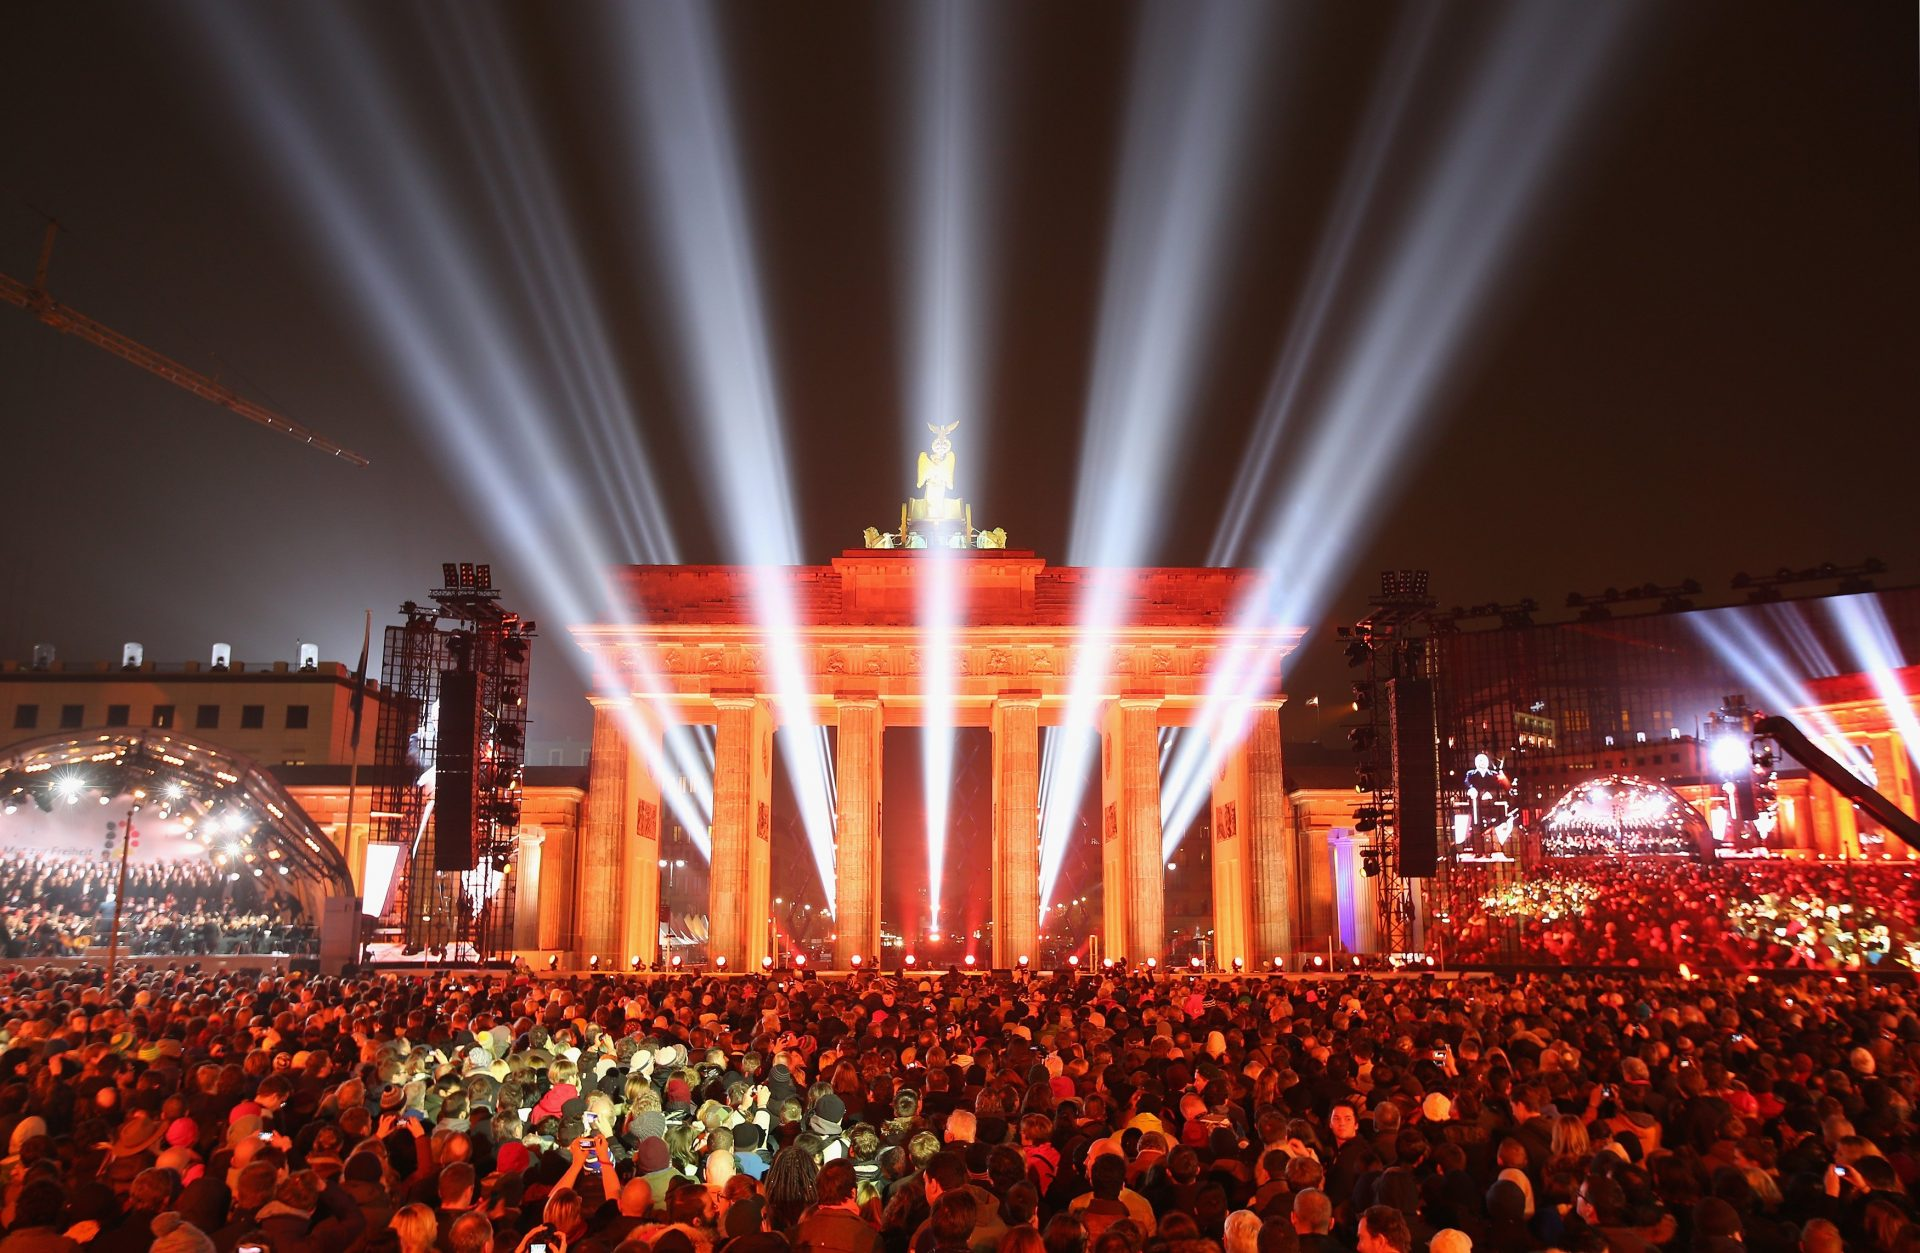 Light shines through the Brandenburg Gate during celebrations on the 25th anniversary of the fall of the Berlin Wall on November 9, 2014. Photo by Sean Gallup/Getty Images.